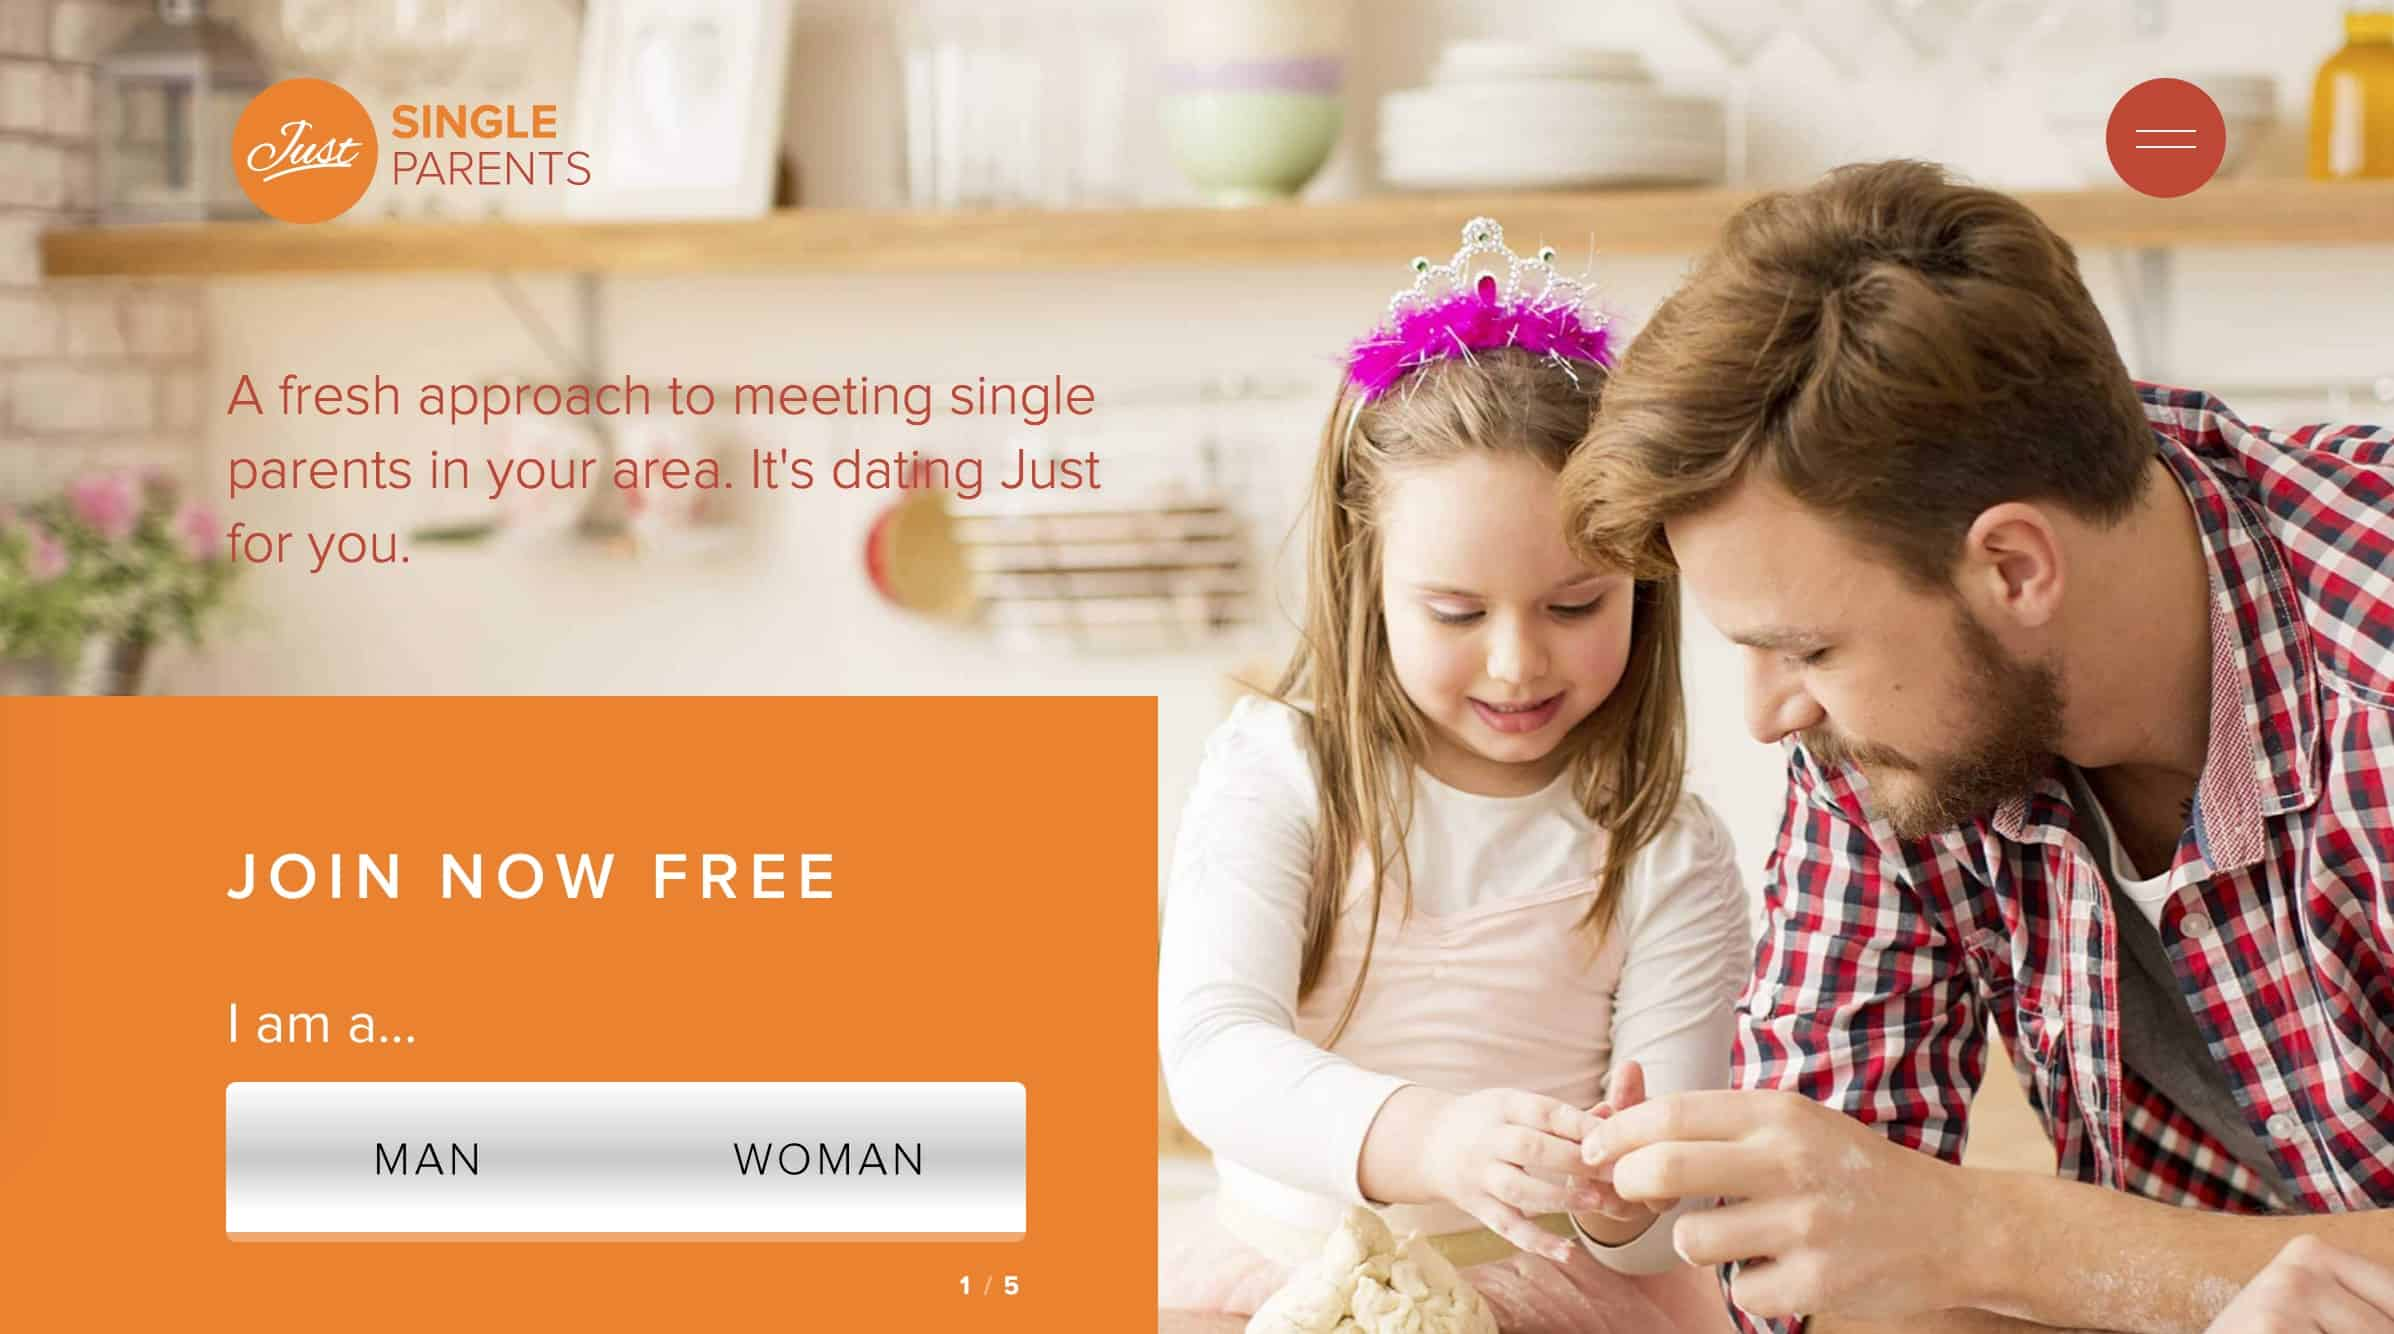 dugger single parent dating site International business times is the leading provider of business news and financial news from the us and around the world.